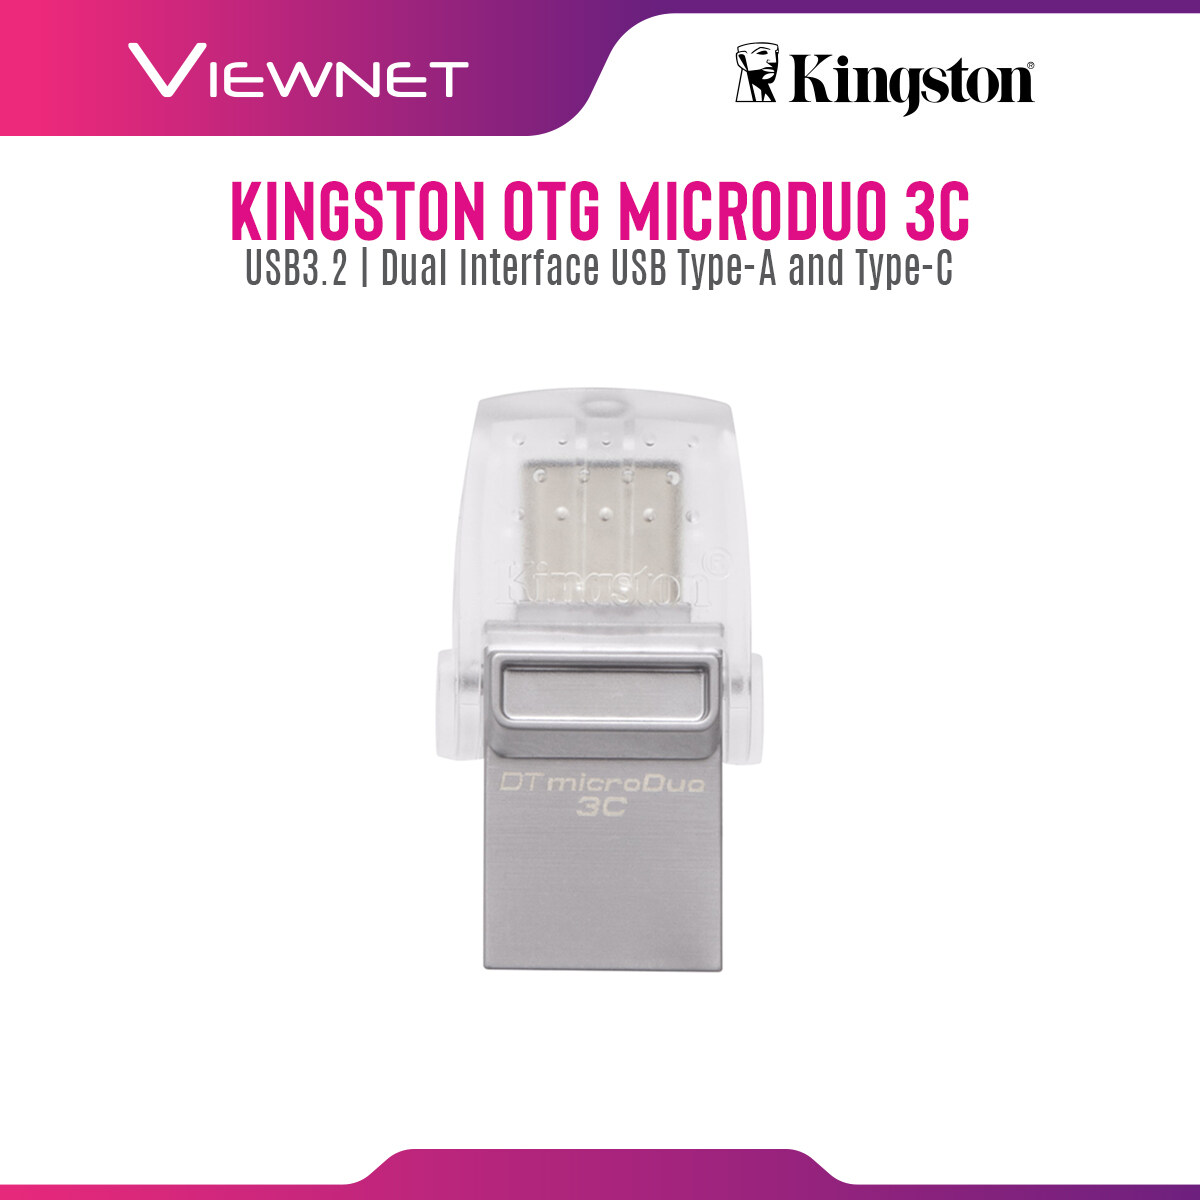 Kingston DataTraveler microDuo 3c USB Flash Drive (32GB / 64GB / 128GB) with Dual Interface for USB Type-A and USB Type-C, Plug and Play